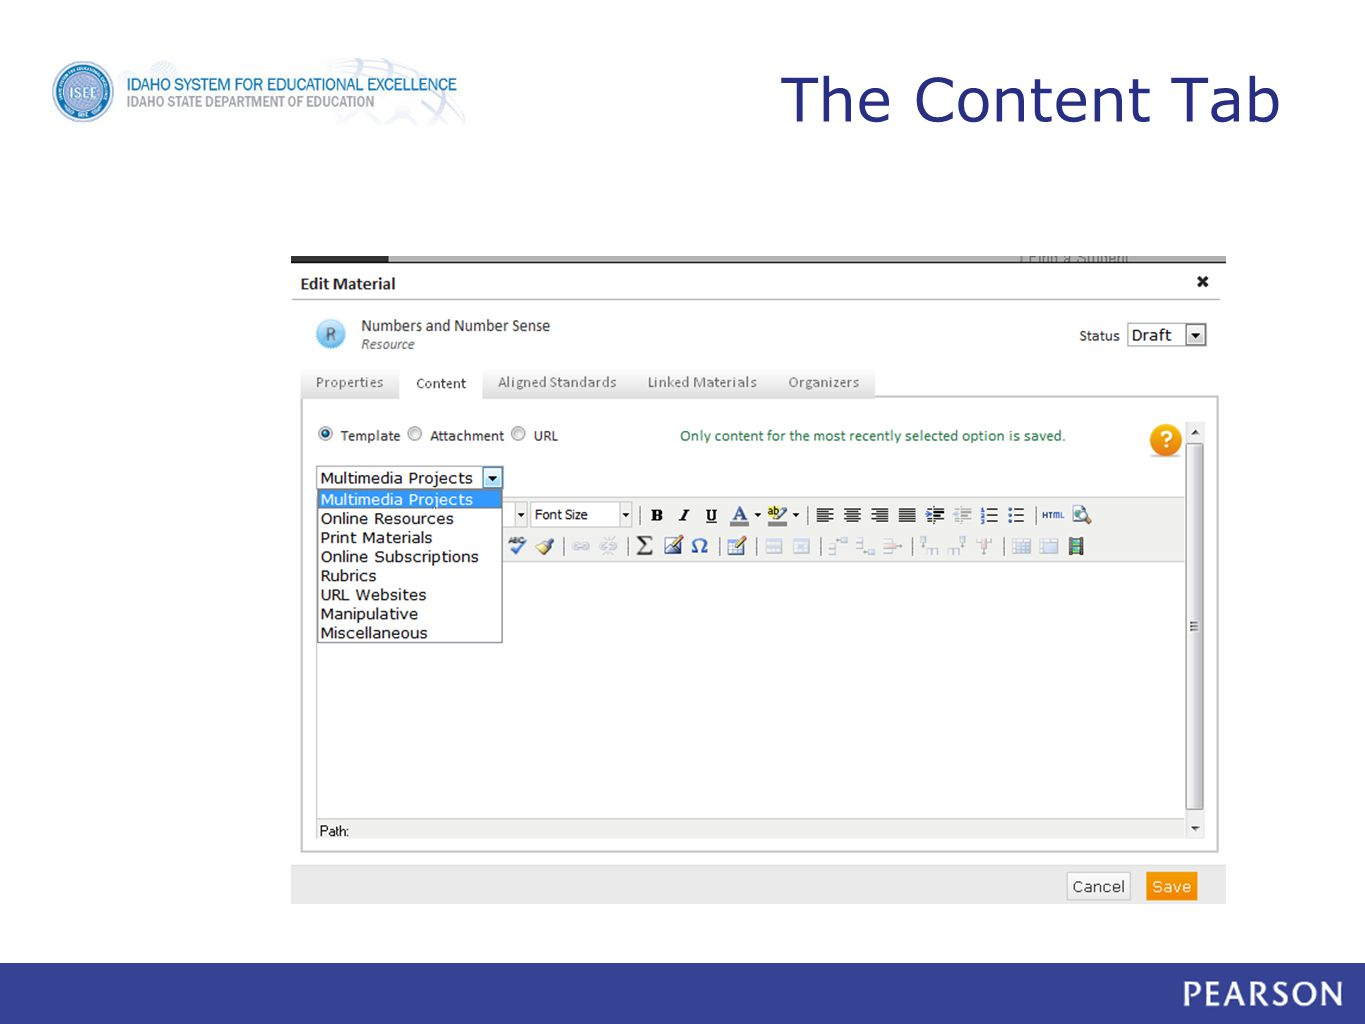 The Content Tab